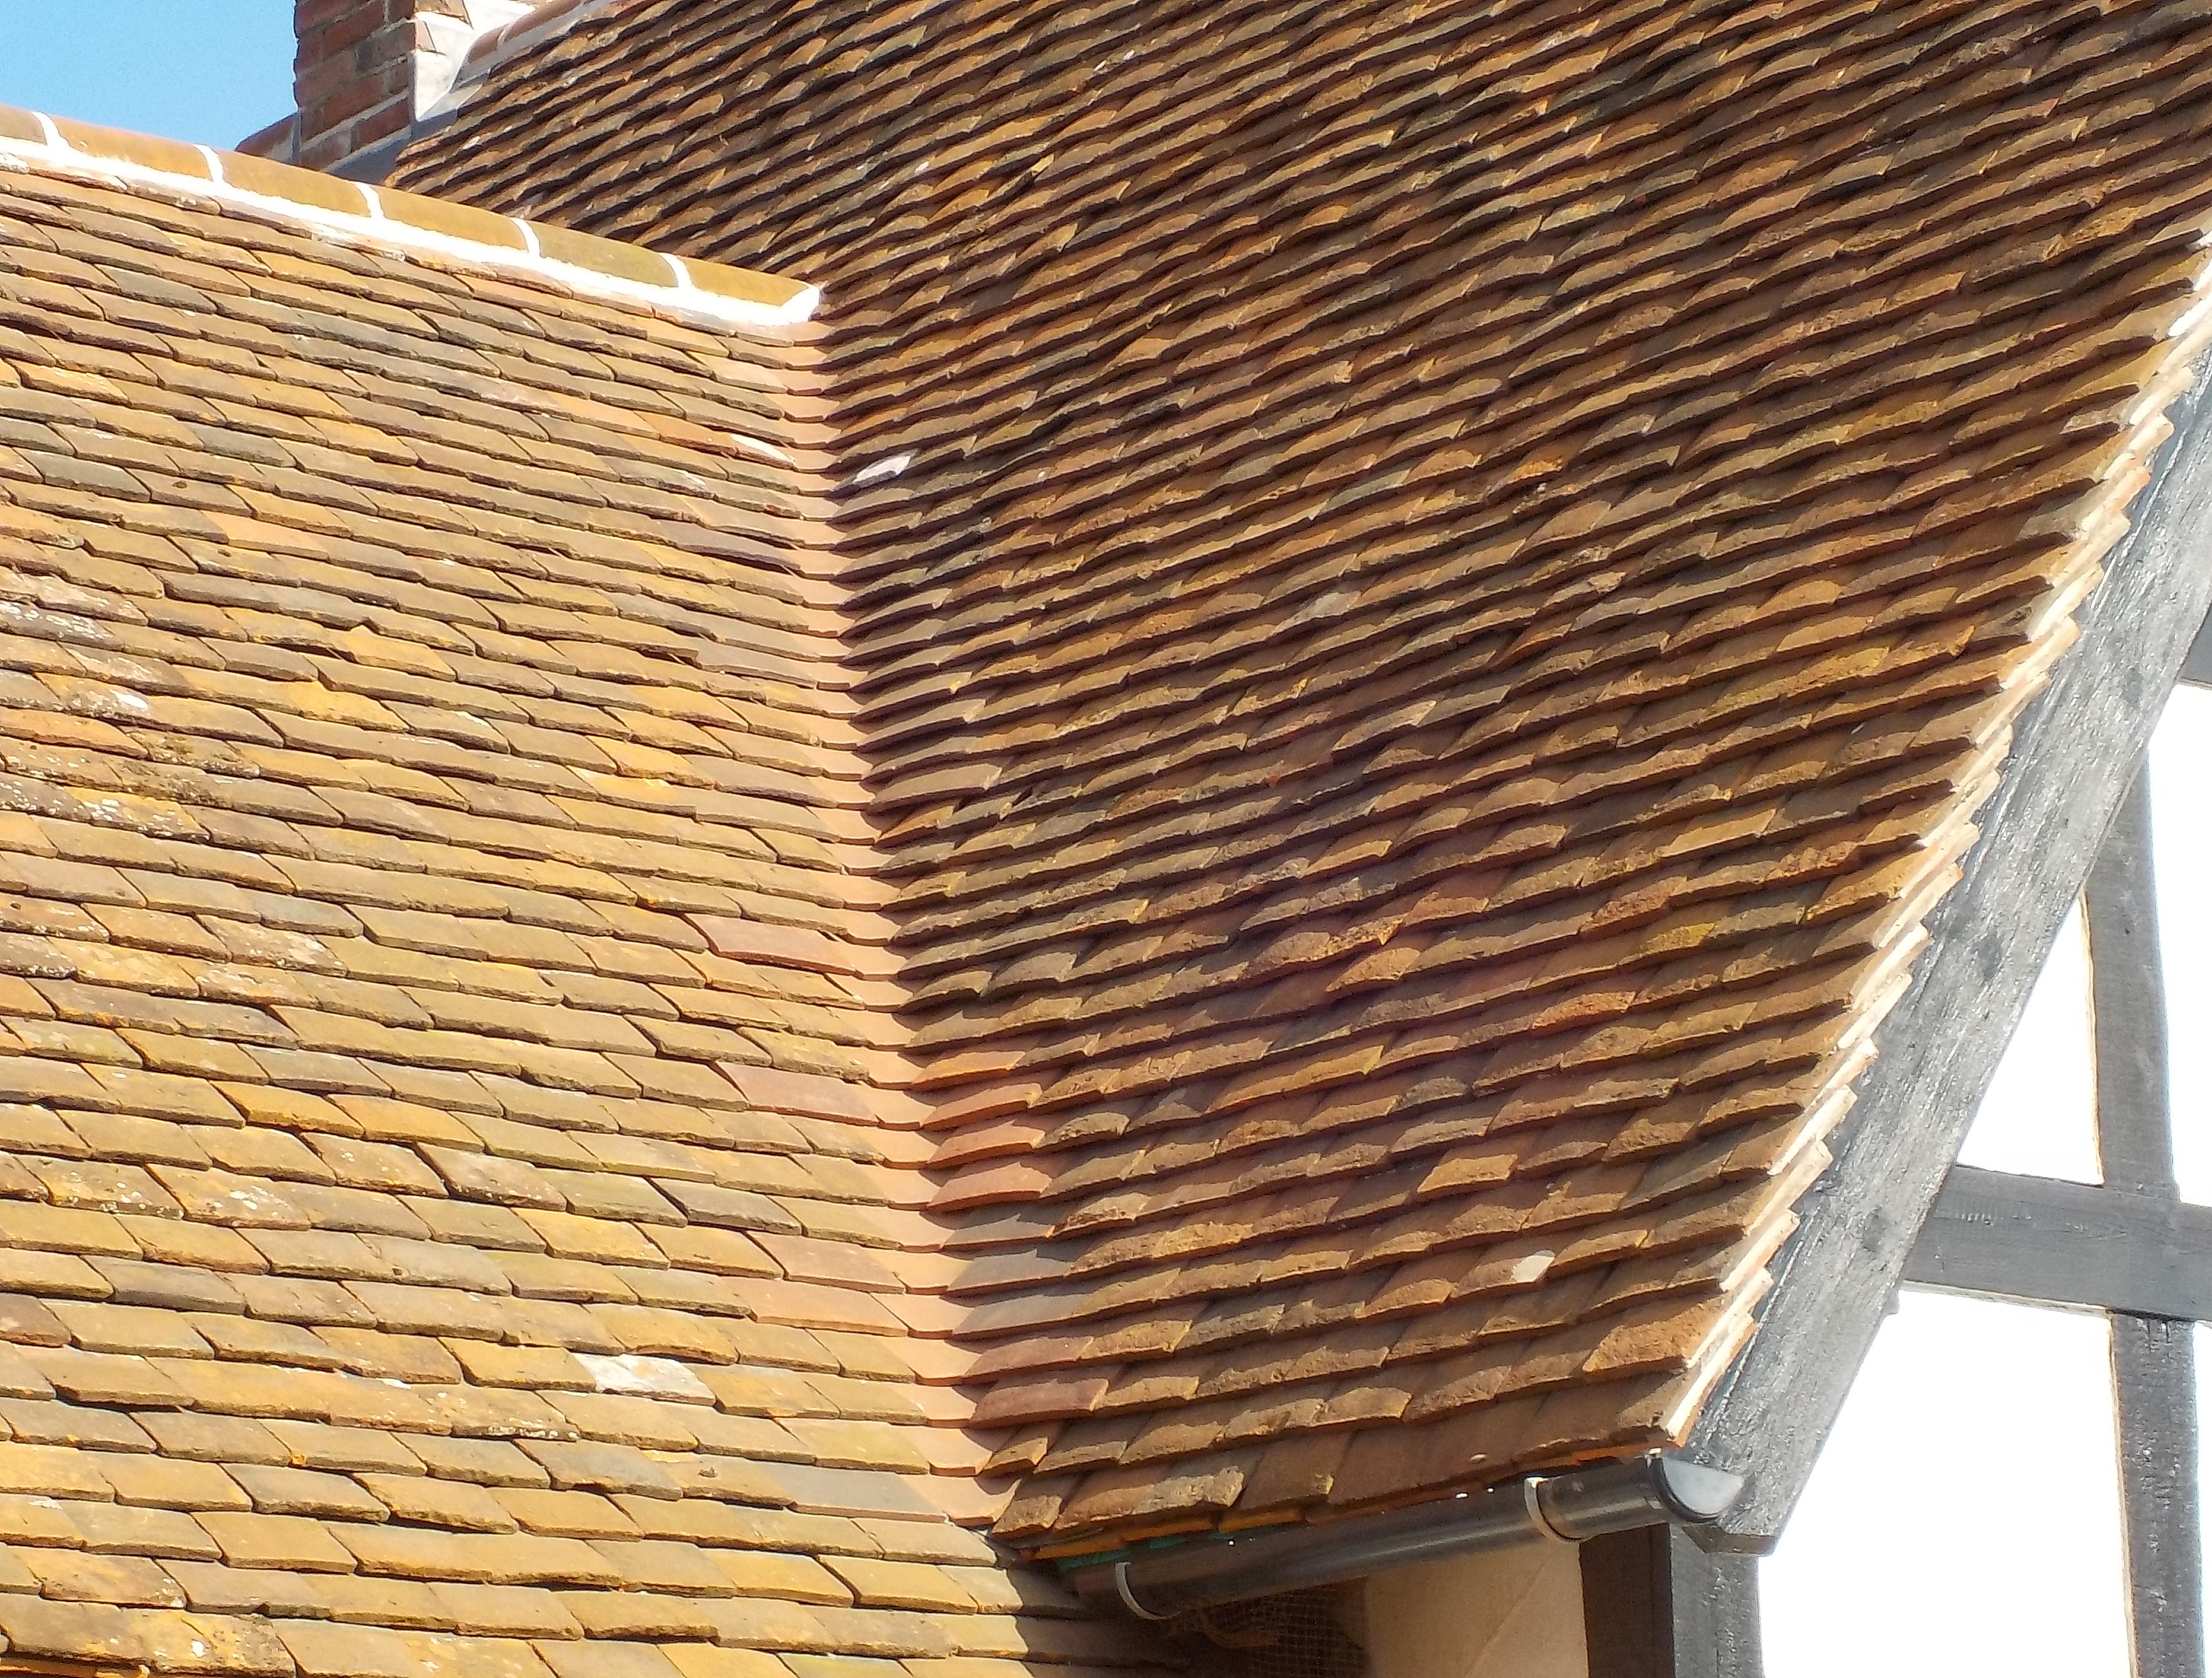 Refurbishment Thorpeness 3a Roofing Ipswich Roofing